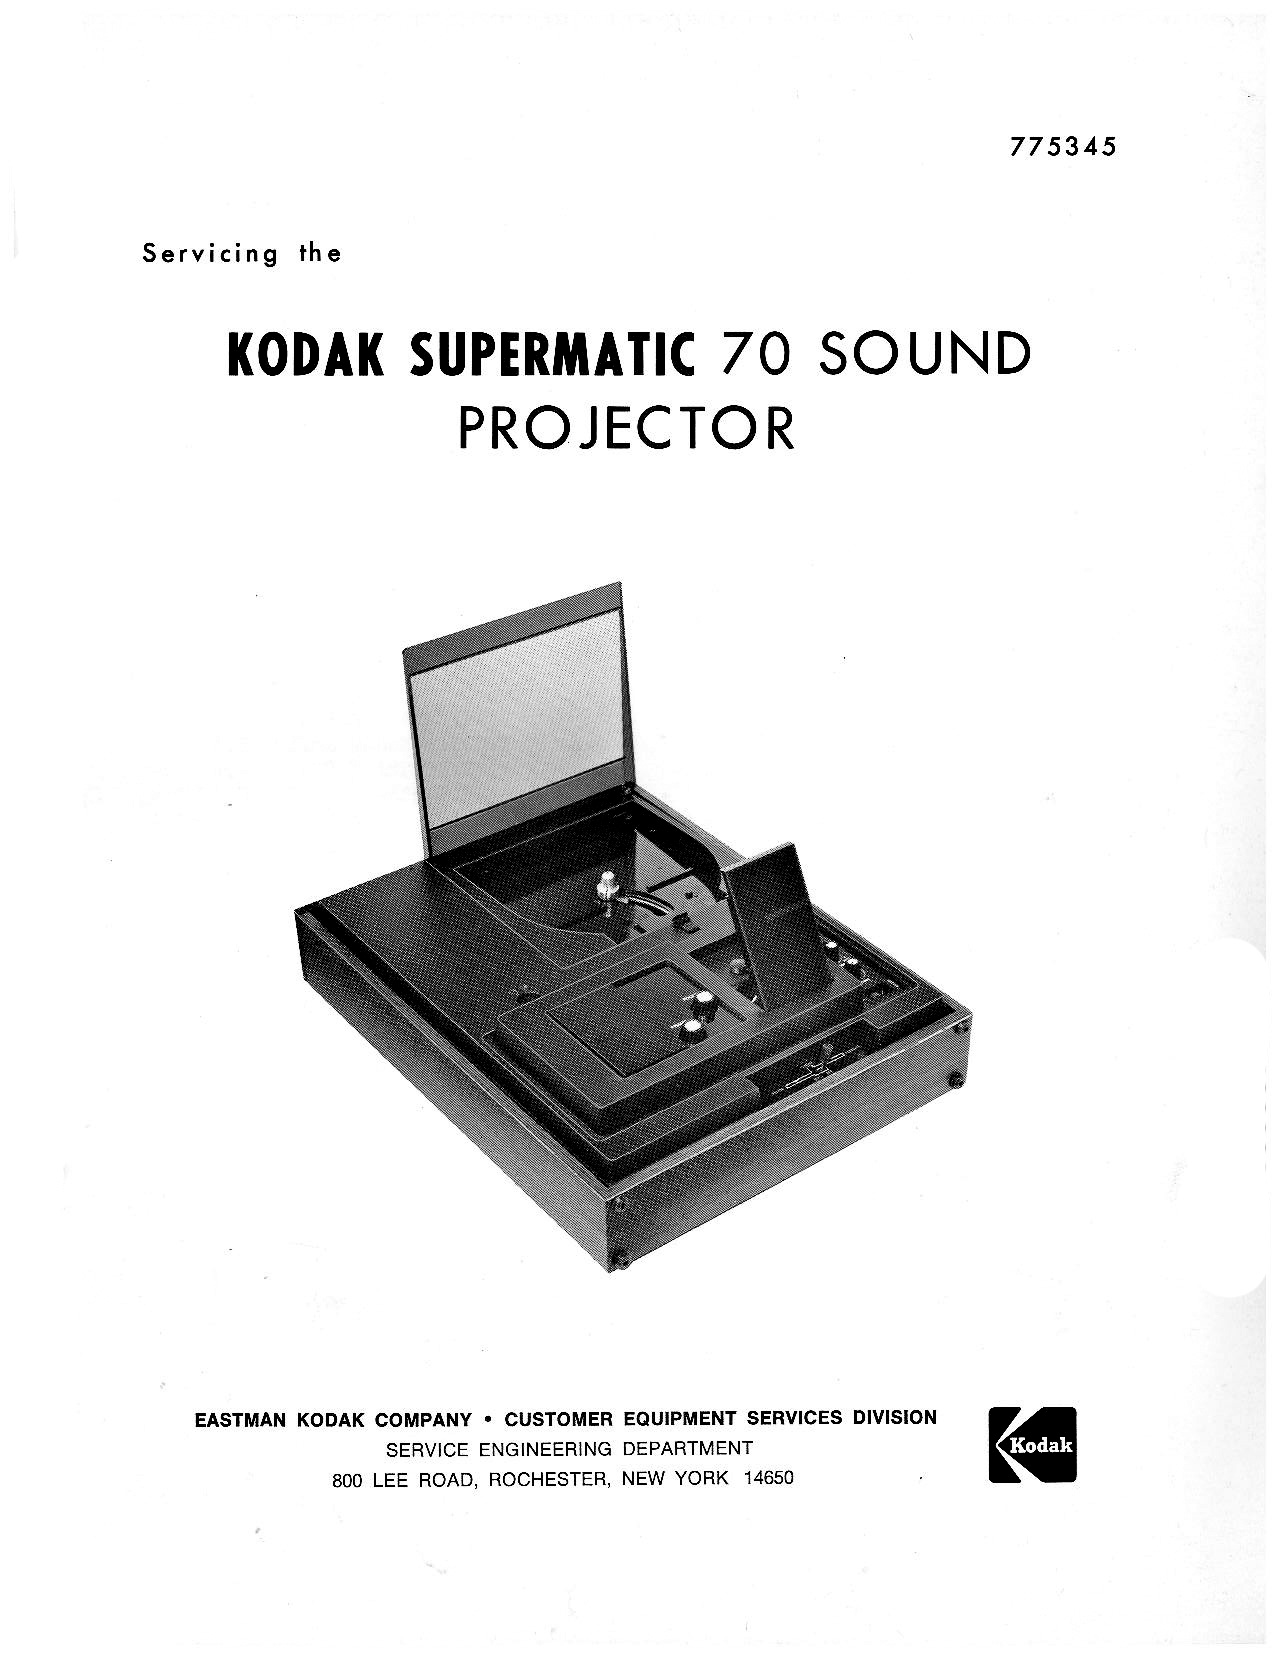 Kodak Supermatic 70 Sound Movie Projector Service And